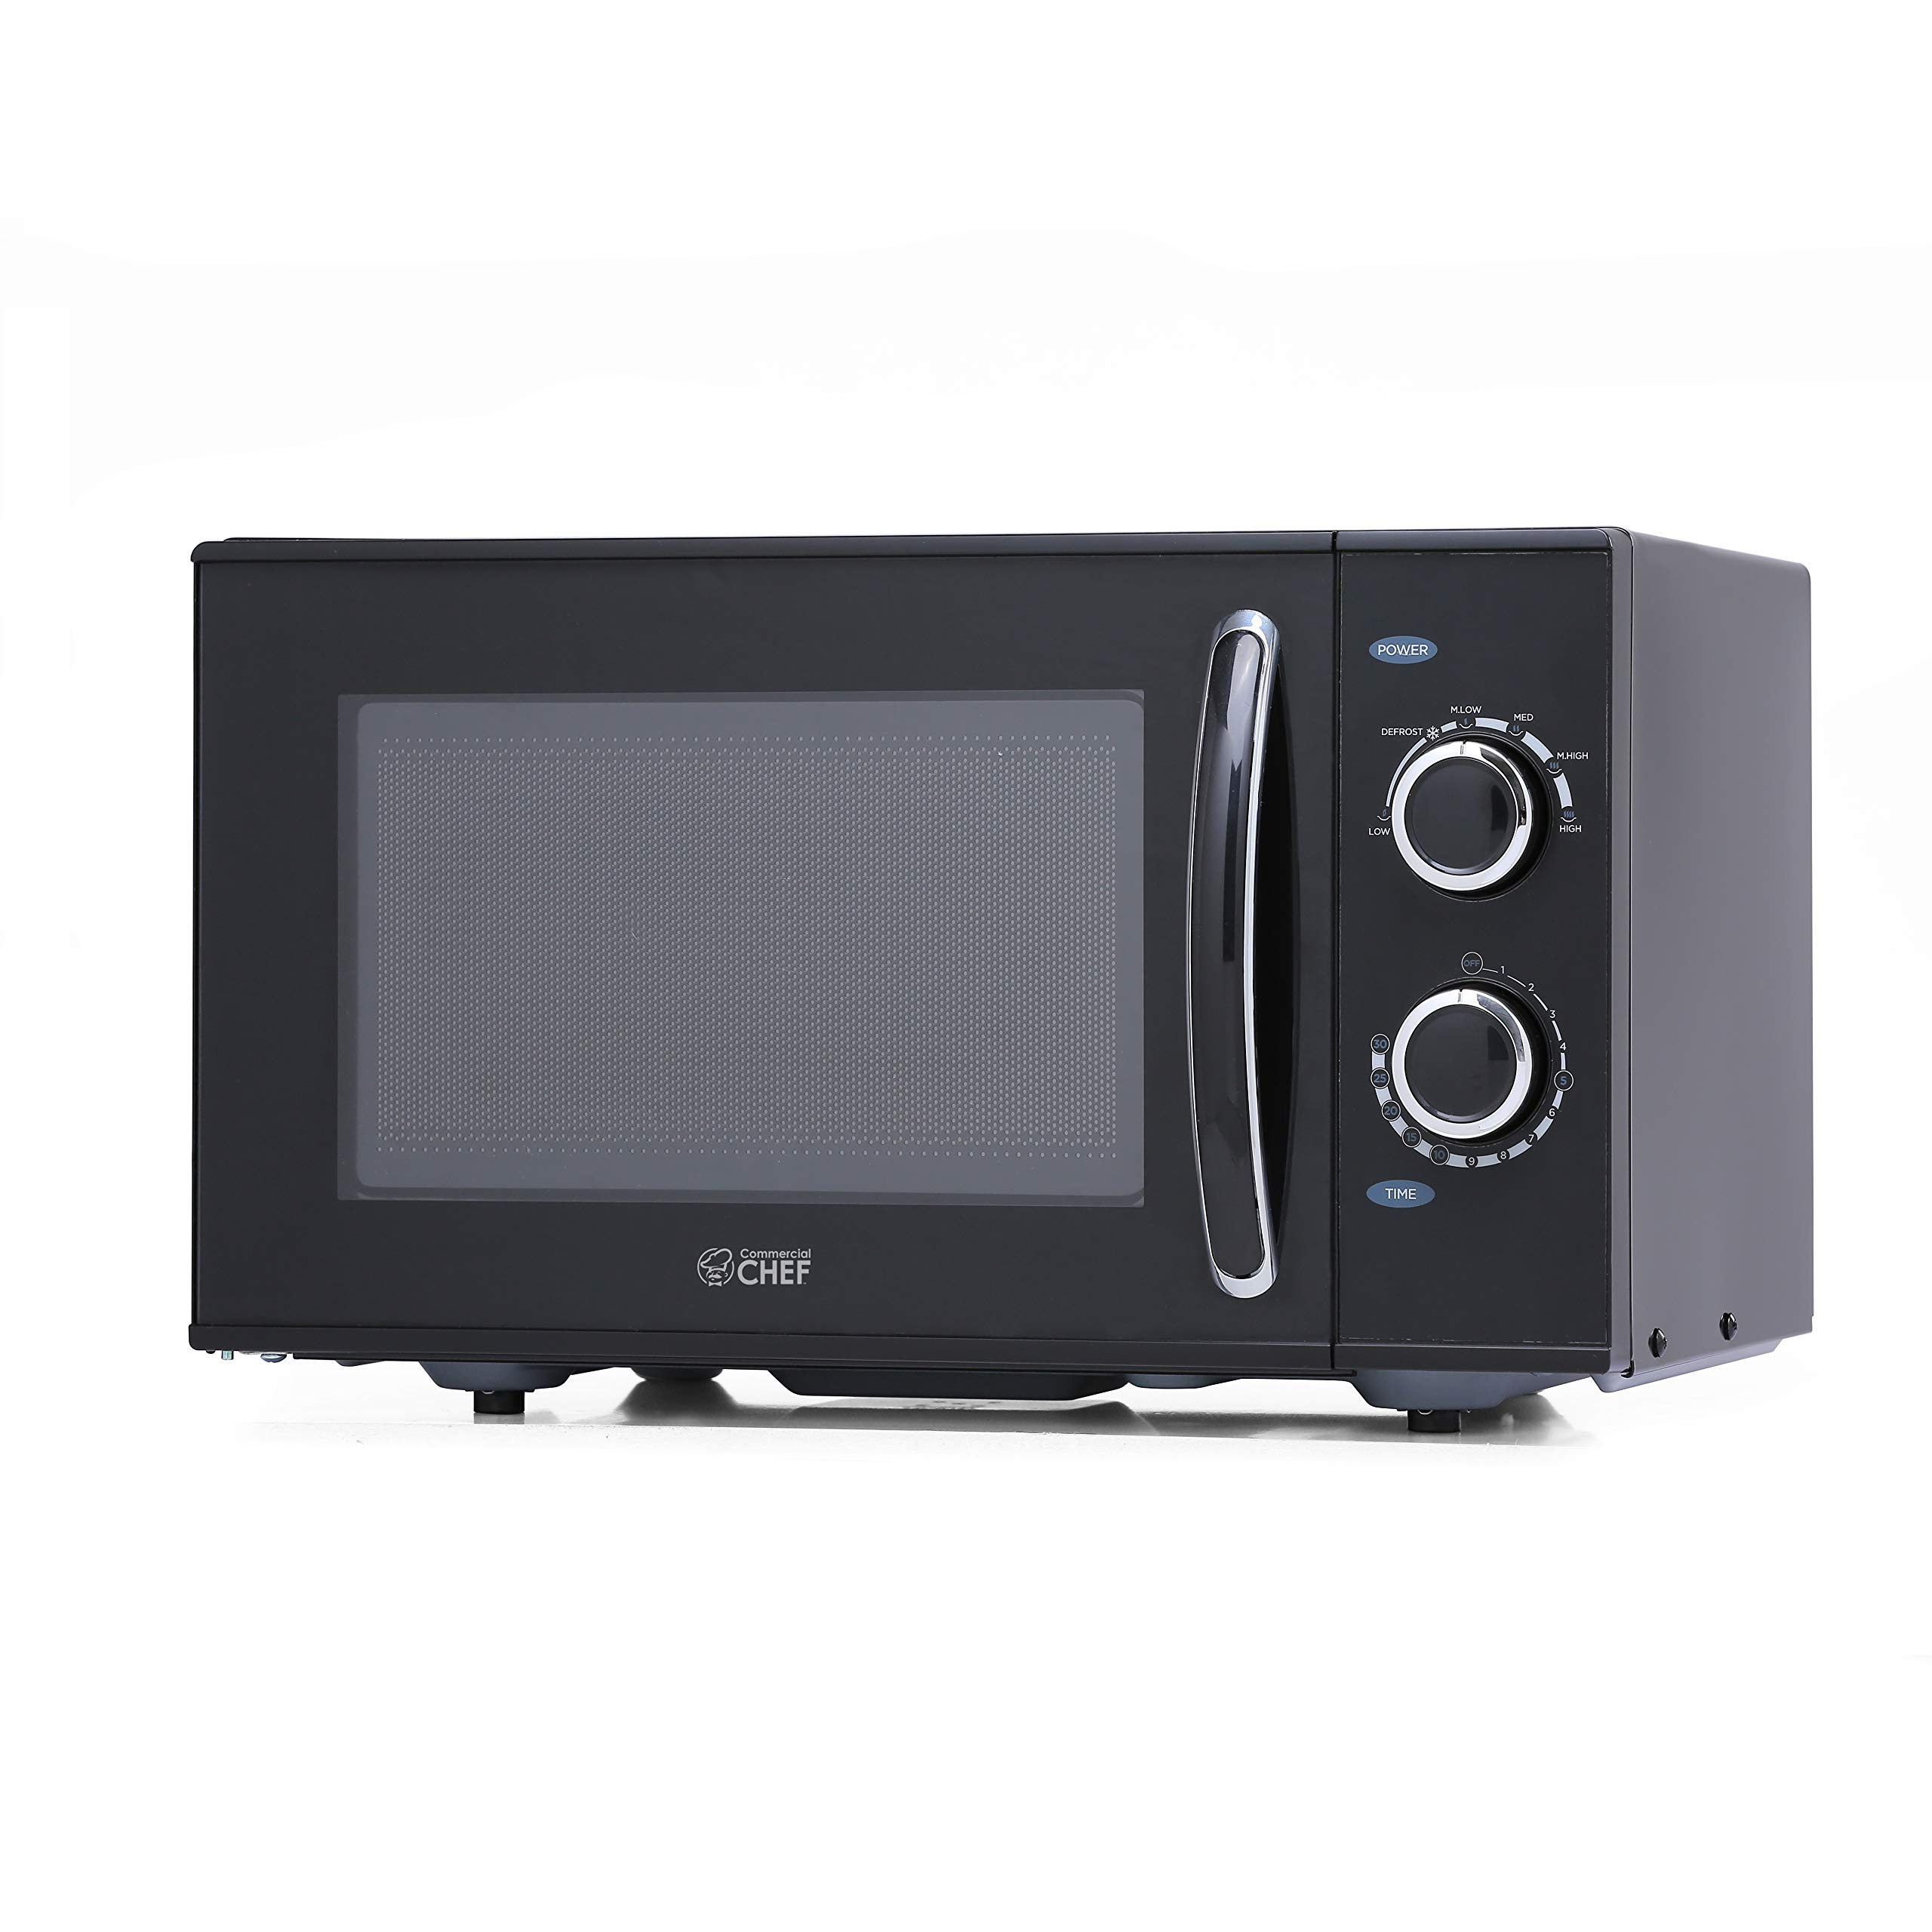 Commercial Chef Counter Top Rotary Microwave Oven 0.9 Cubic Feet, 900 Watt, Black, CHMH900B by Commercial CHEF